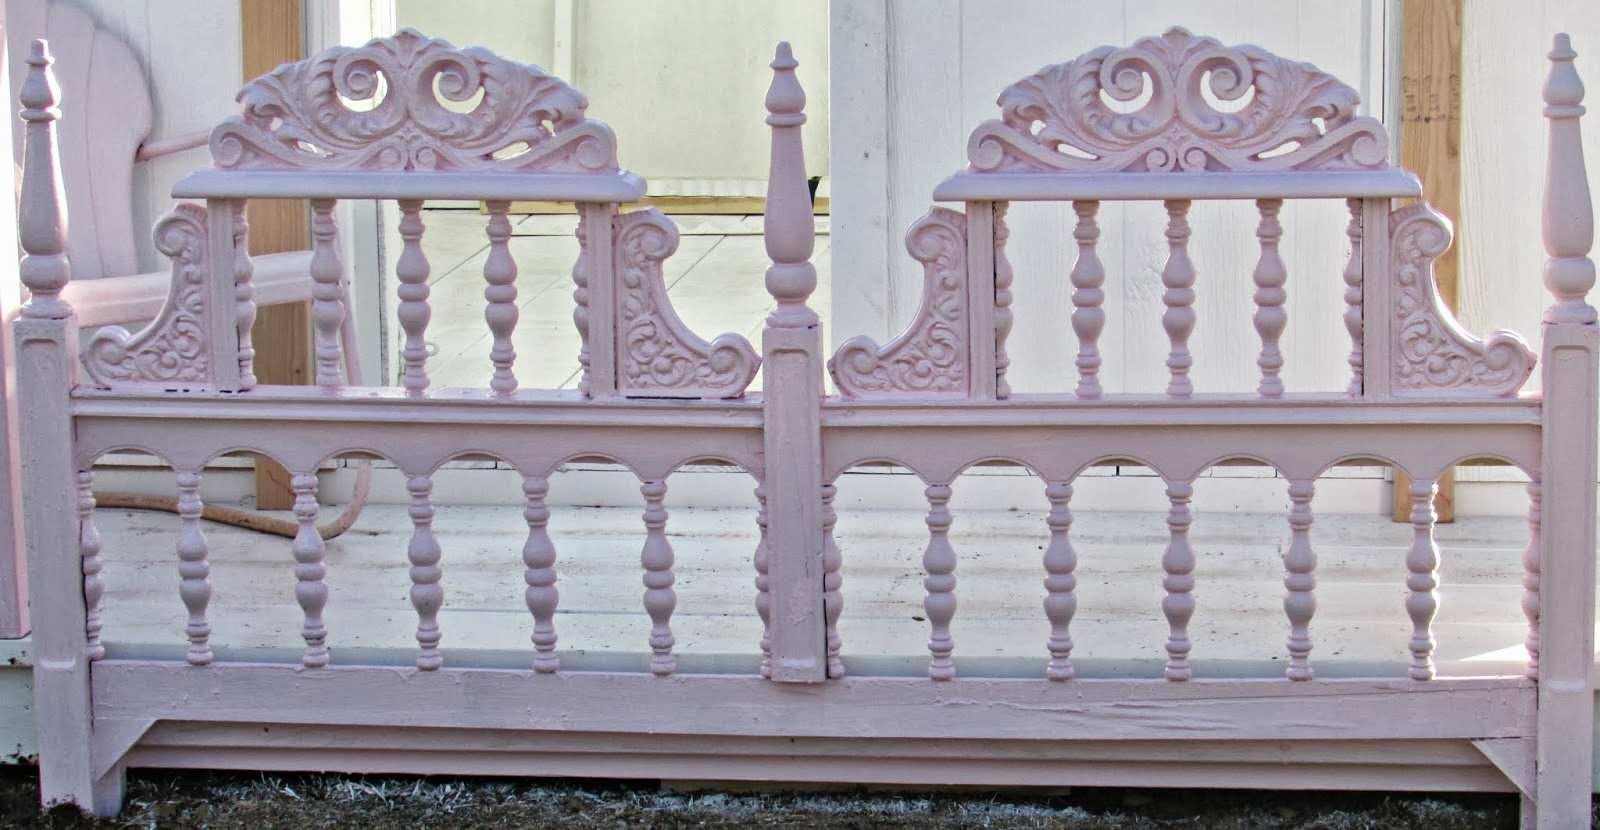 http://penny-pennystreasures.blogspot.com/2014/02/repurposed-headboard.html